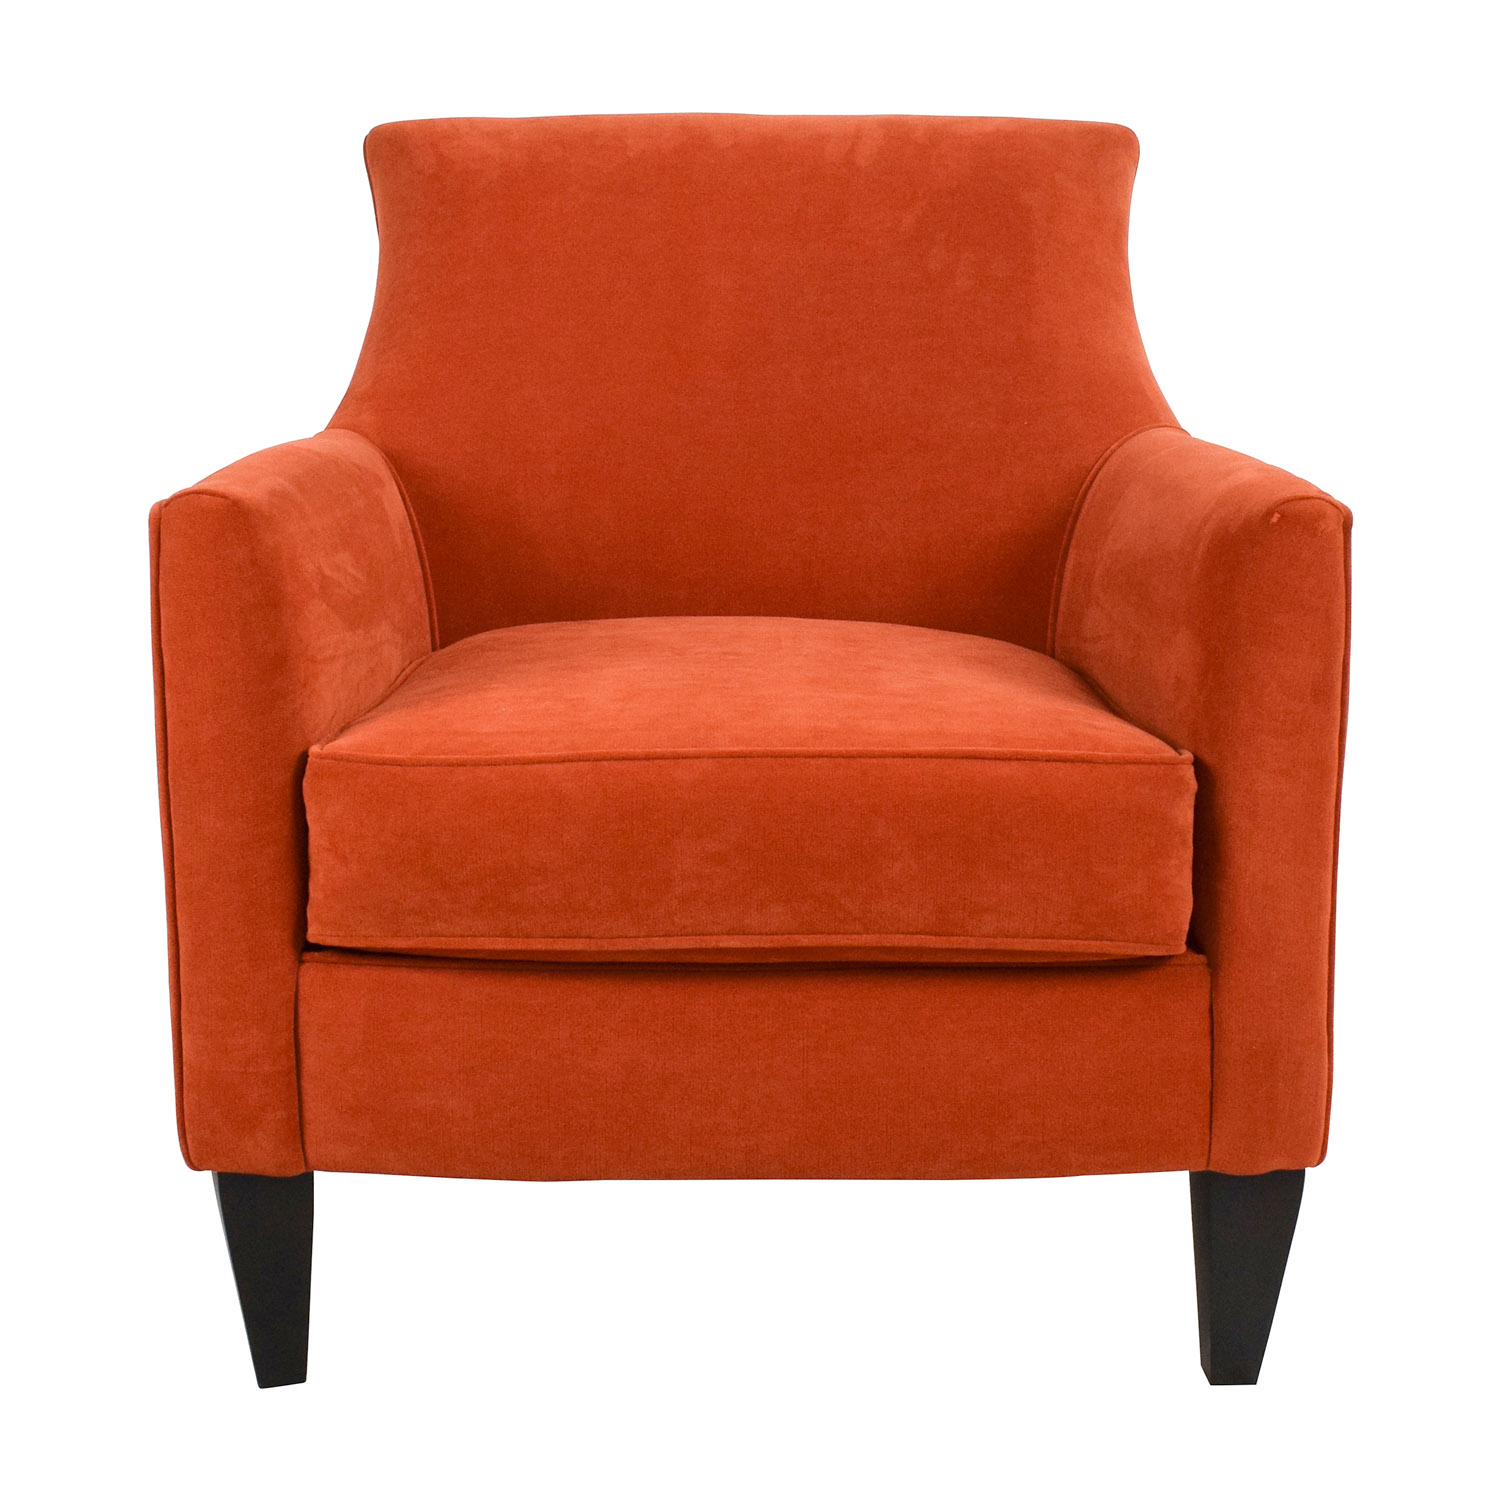 57% OFF Crate & Barrel Crate & Barrel Hennessy Sofa Chair Chairs